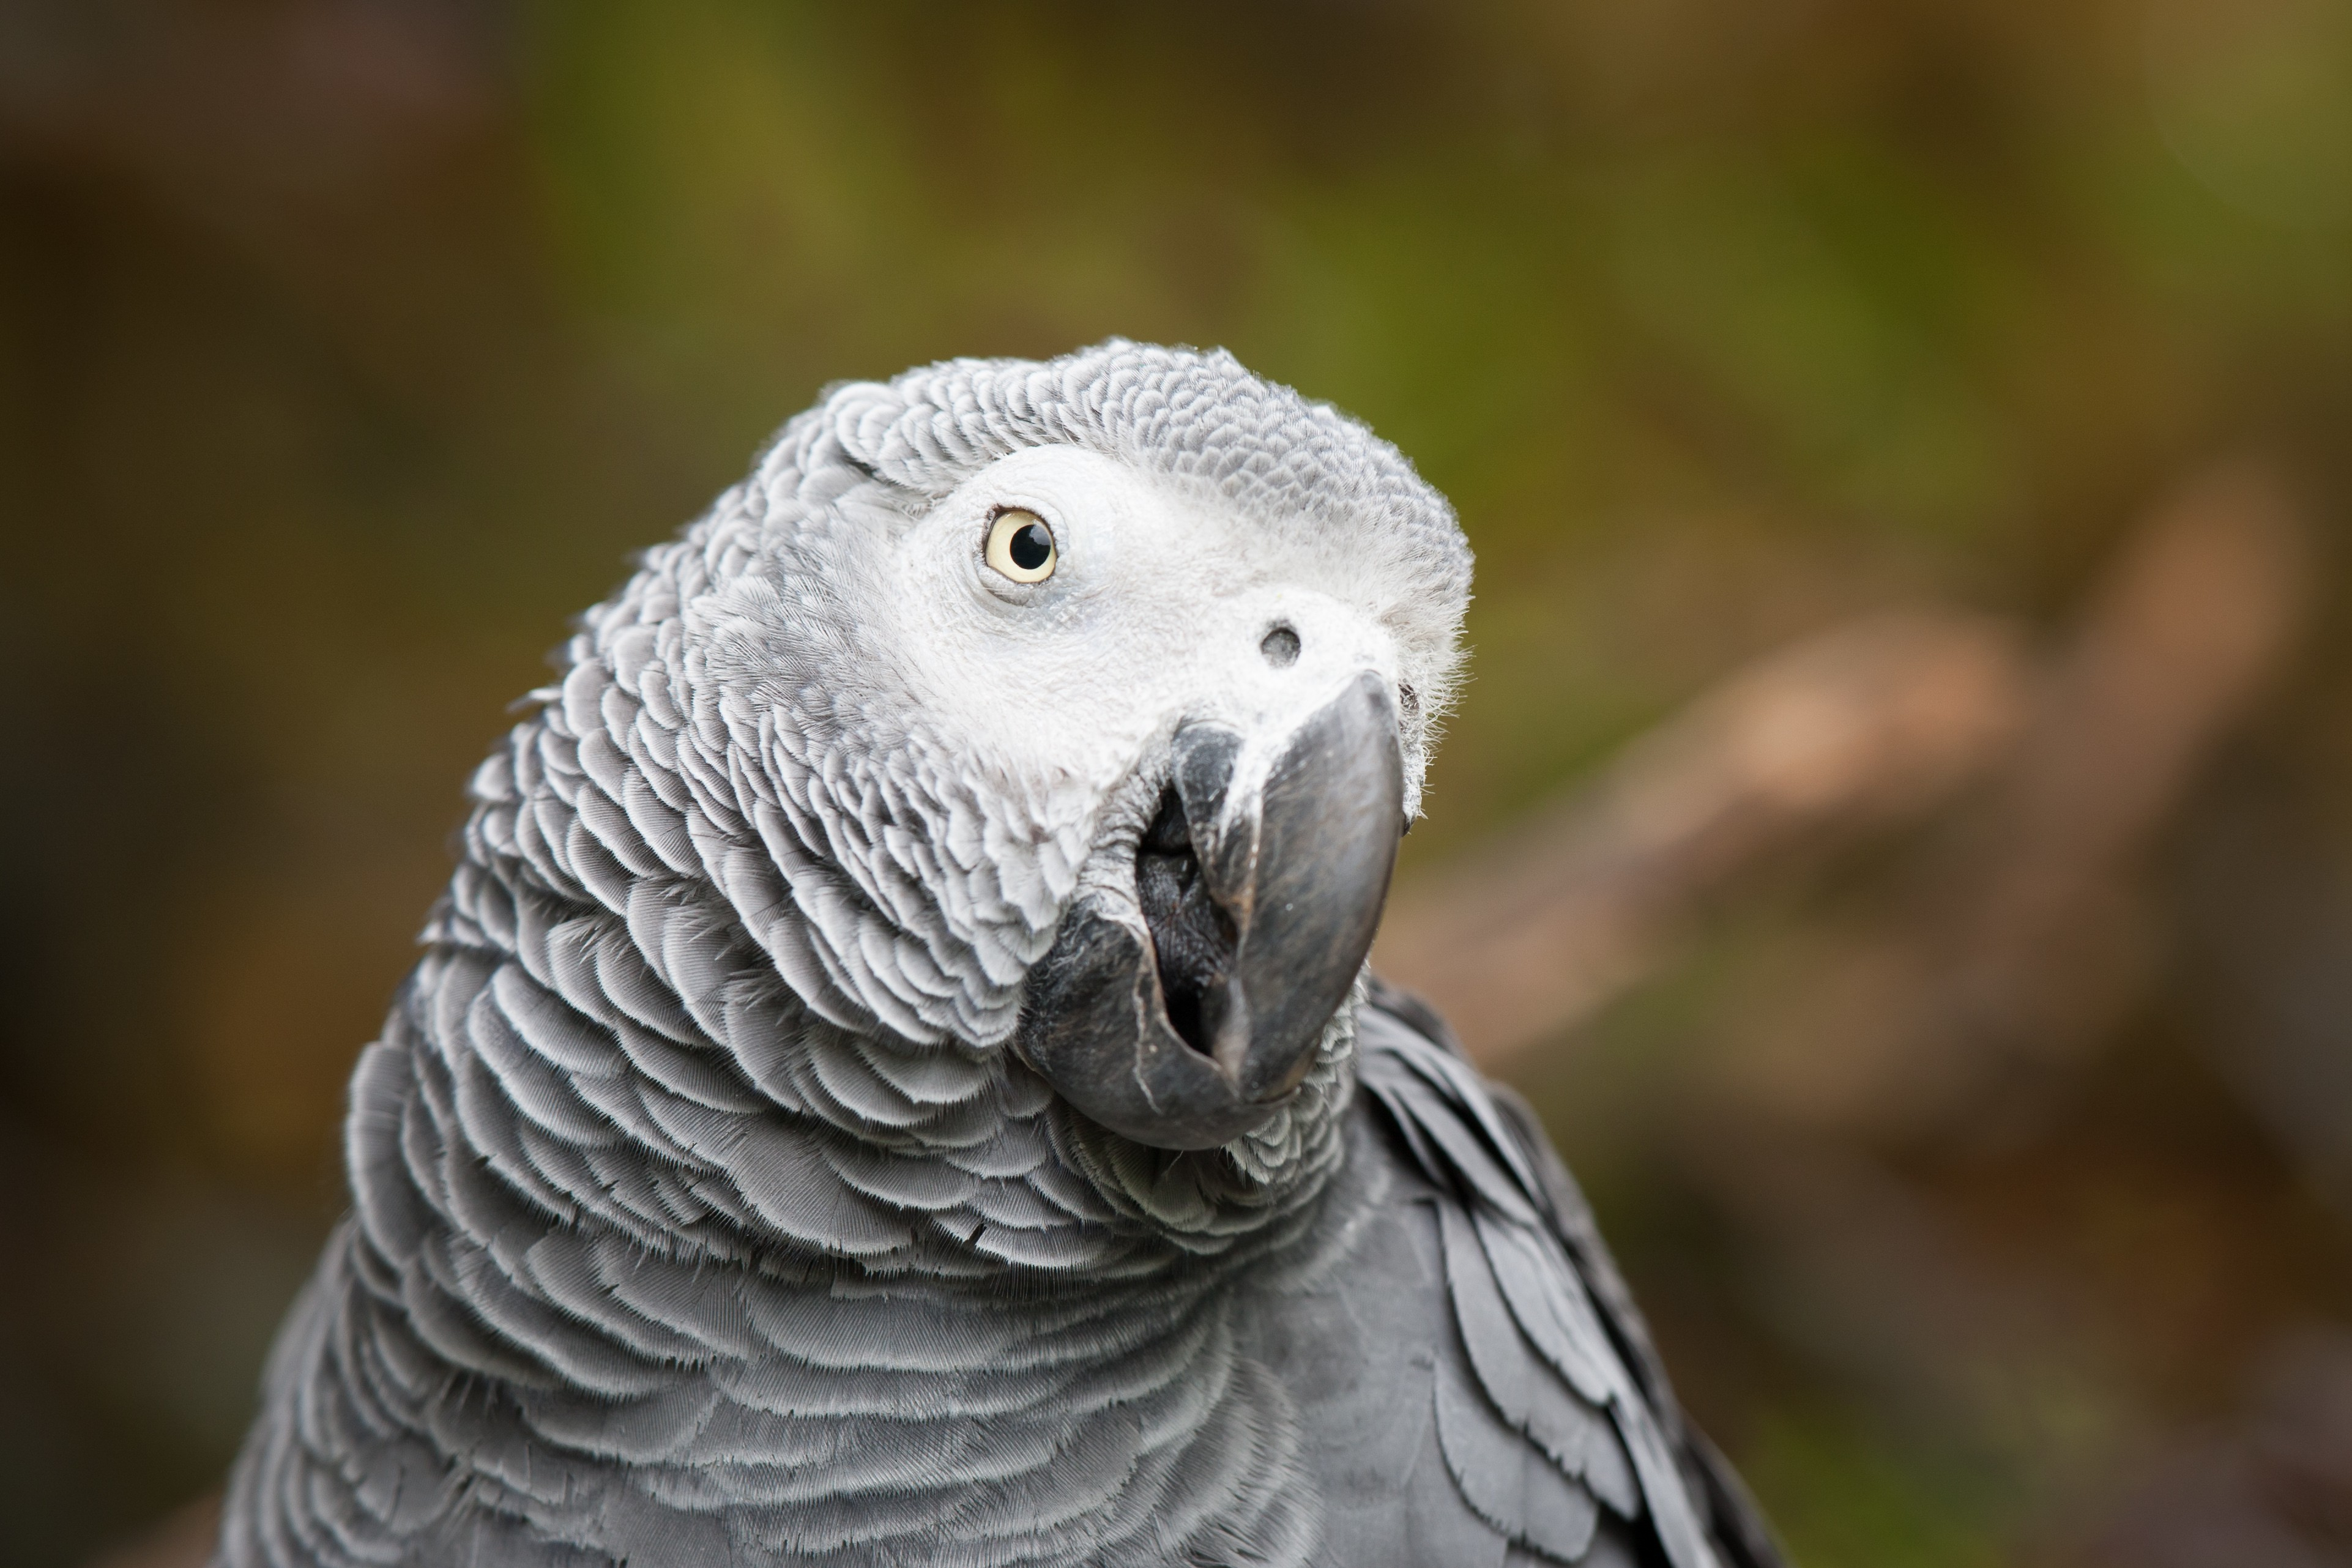 Quotes Iphone Wallpaper Pinterest Wallpaper African Grey Parrot Cute Animals Funny Blur